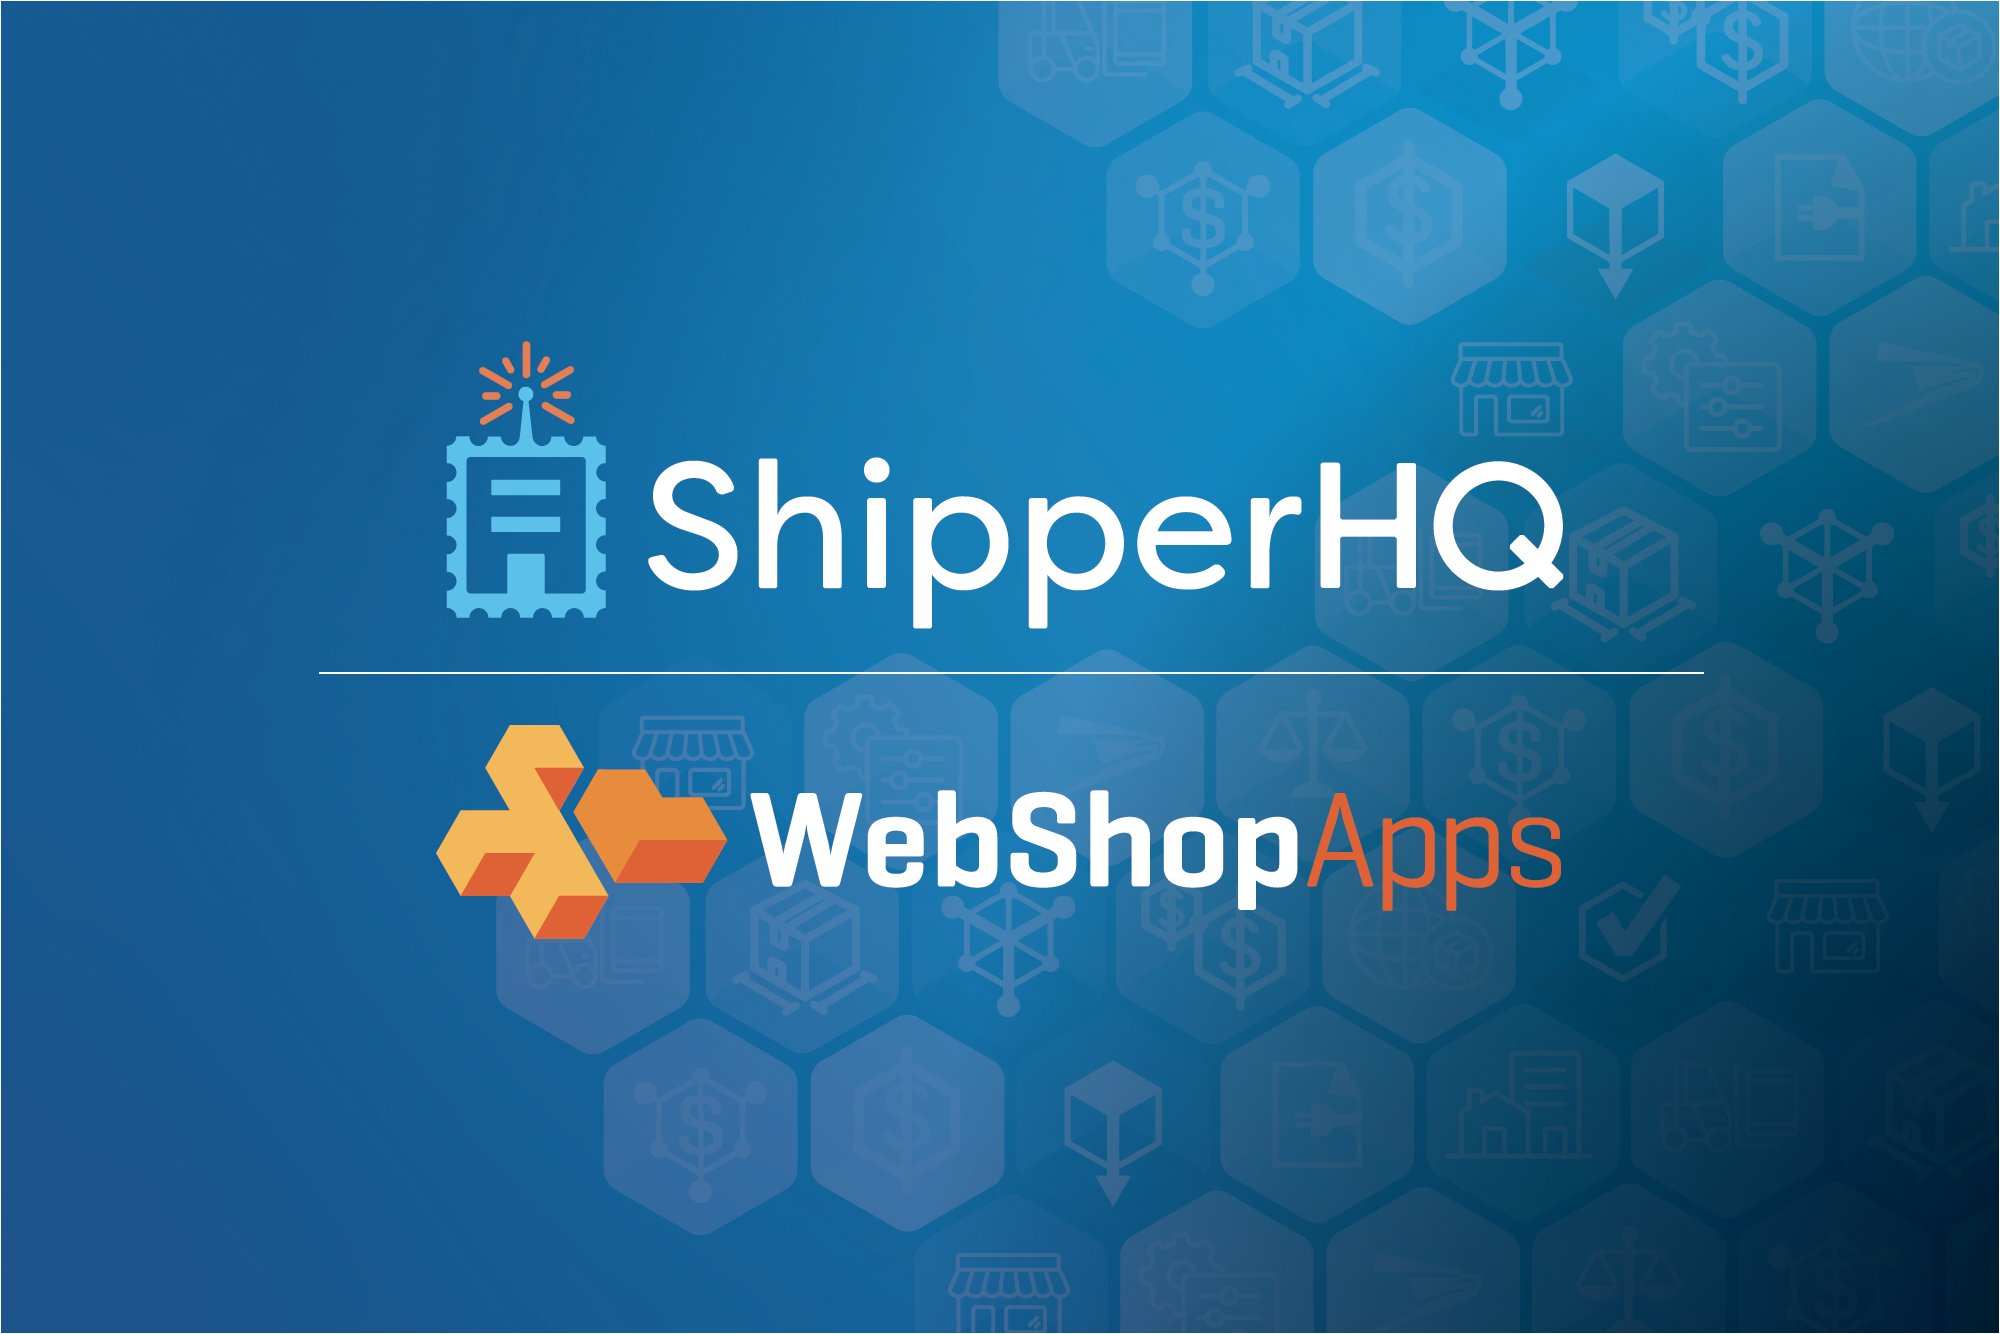 webshopapps logo and shipperhq logo on a blue background